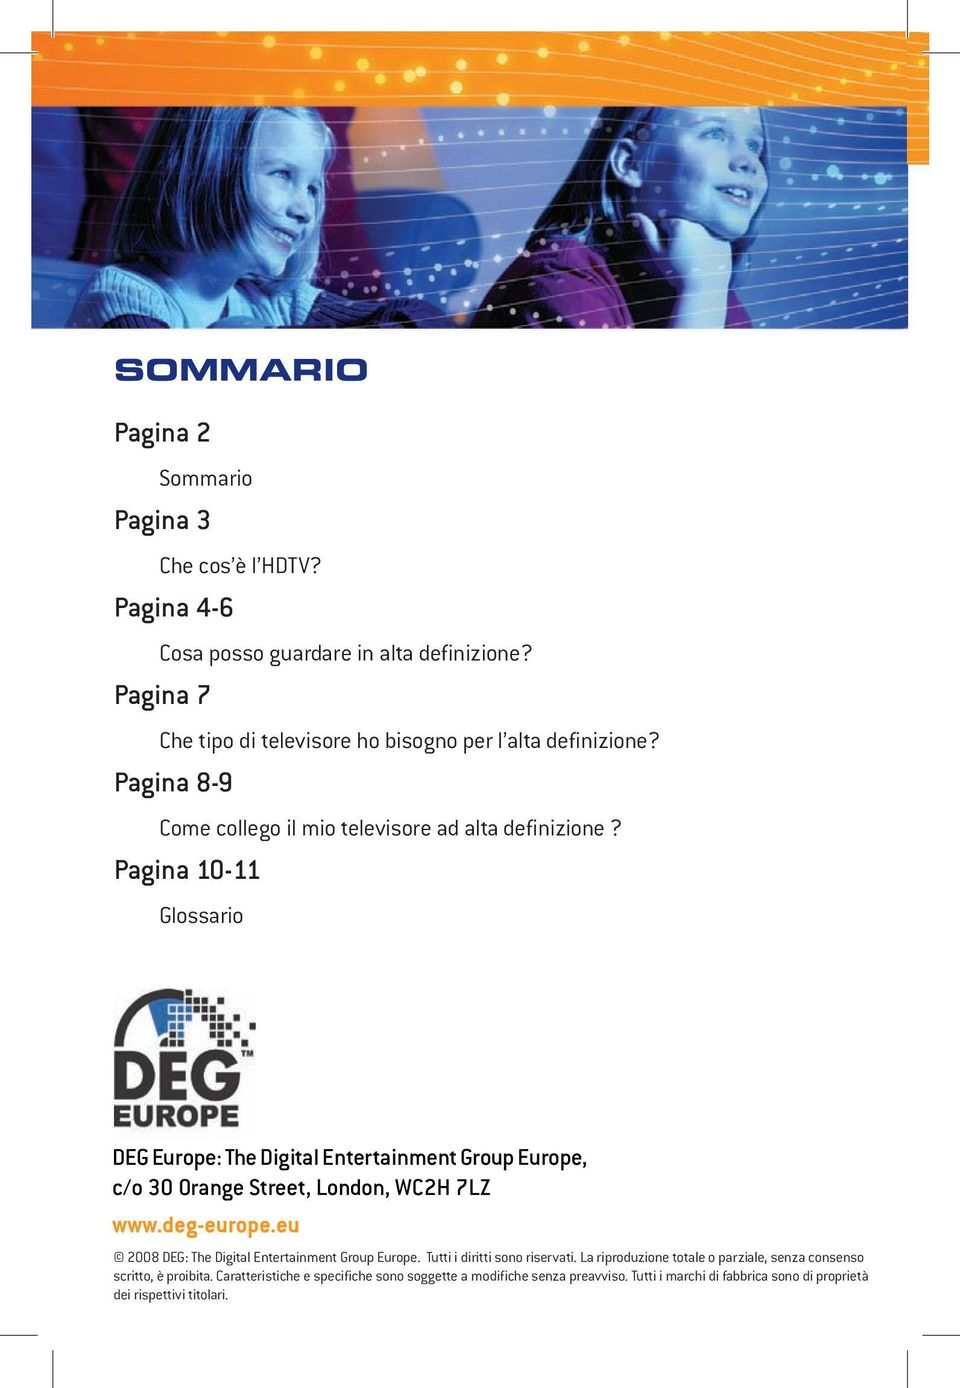 Pagina 10-11 Glossario DEG Europe: The Digital Entertainment Group Europe, c/o 30 Orange Street, London, WC2H 7LZ www.deg-europe.